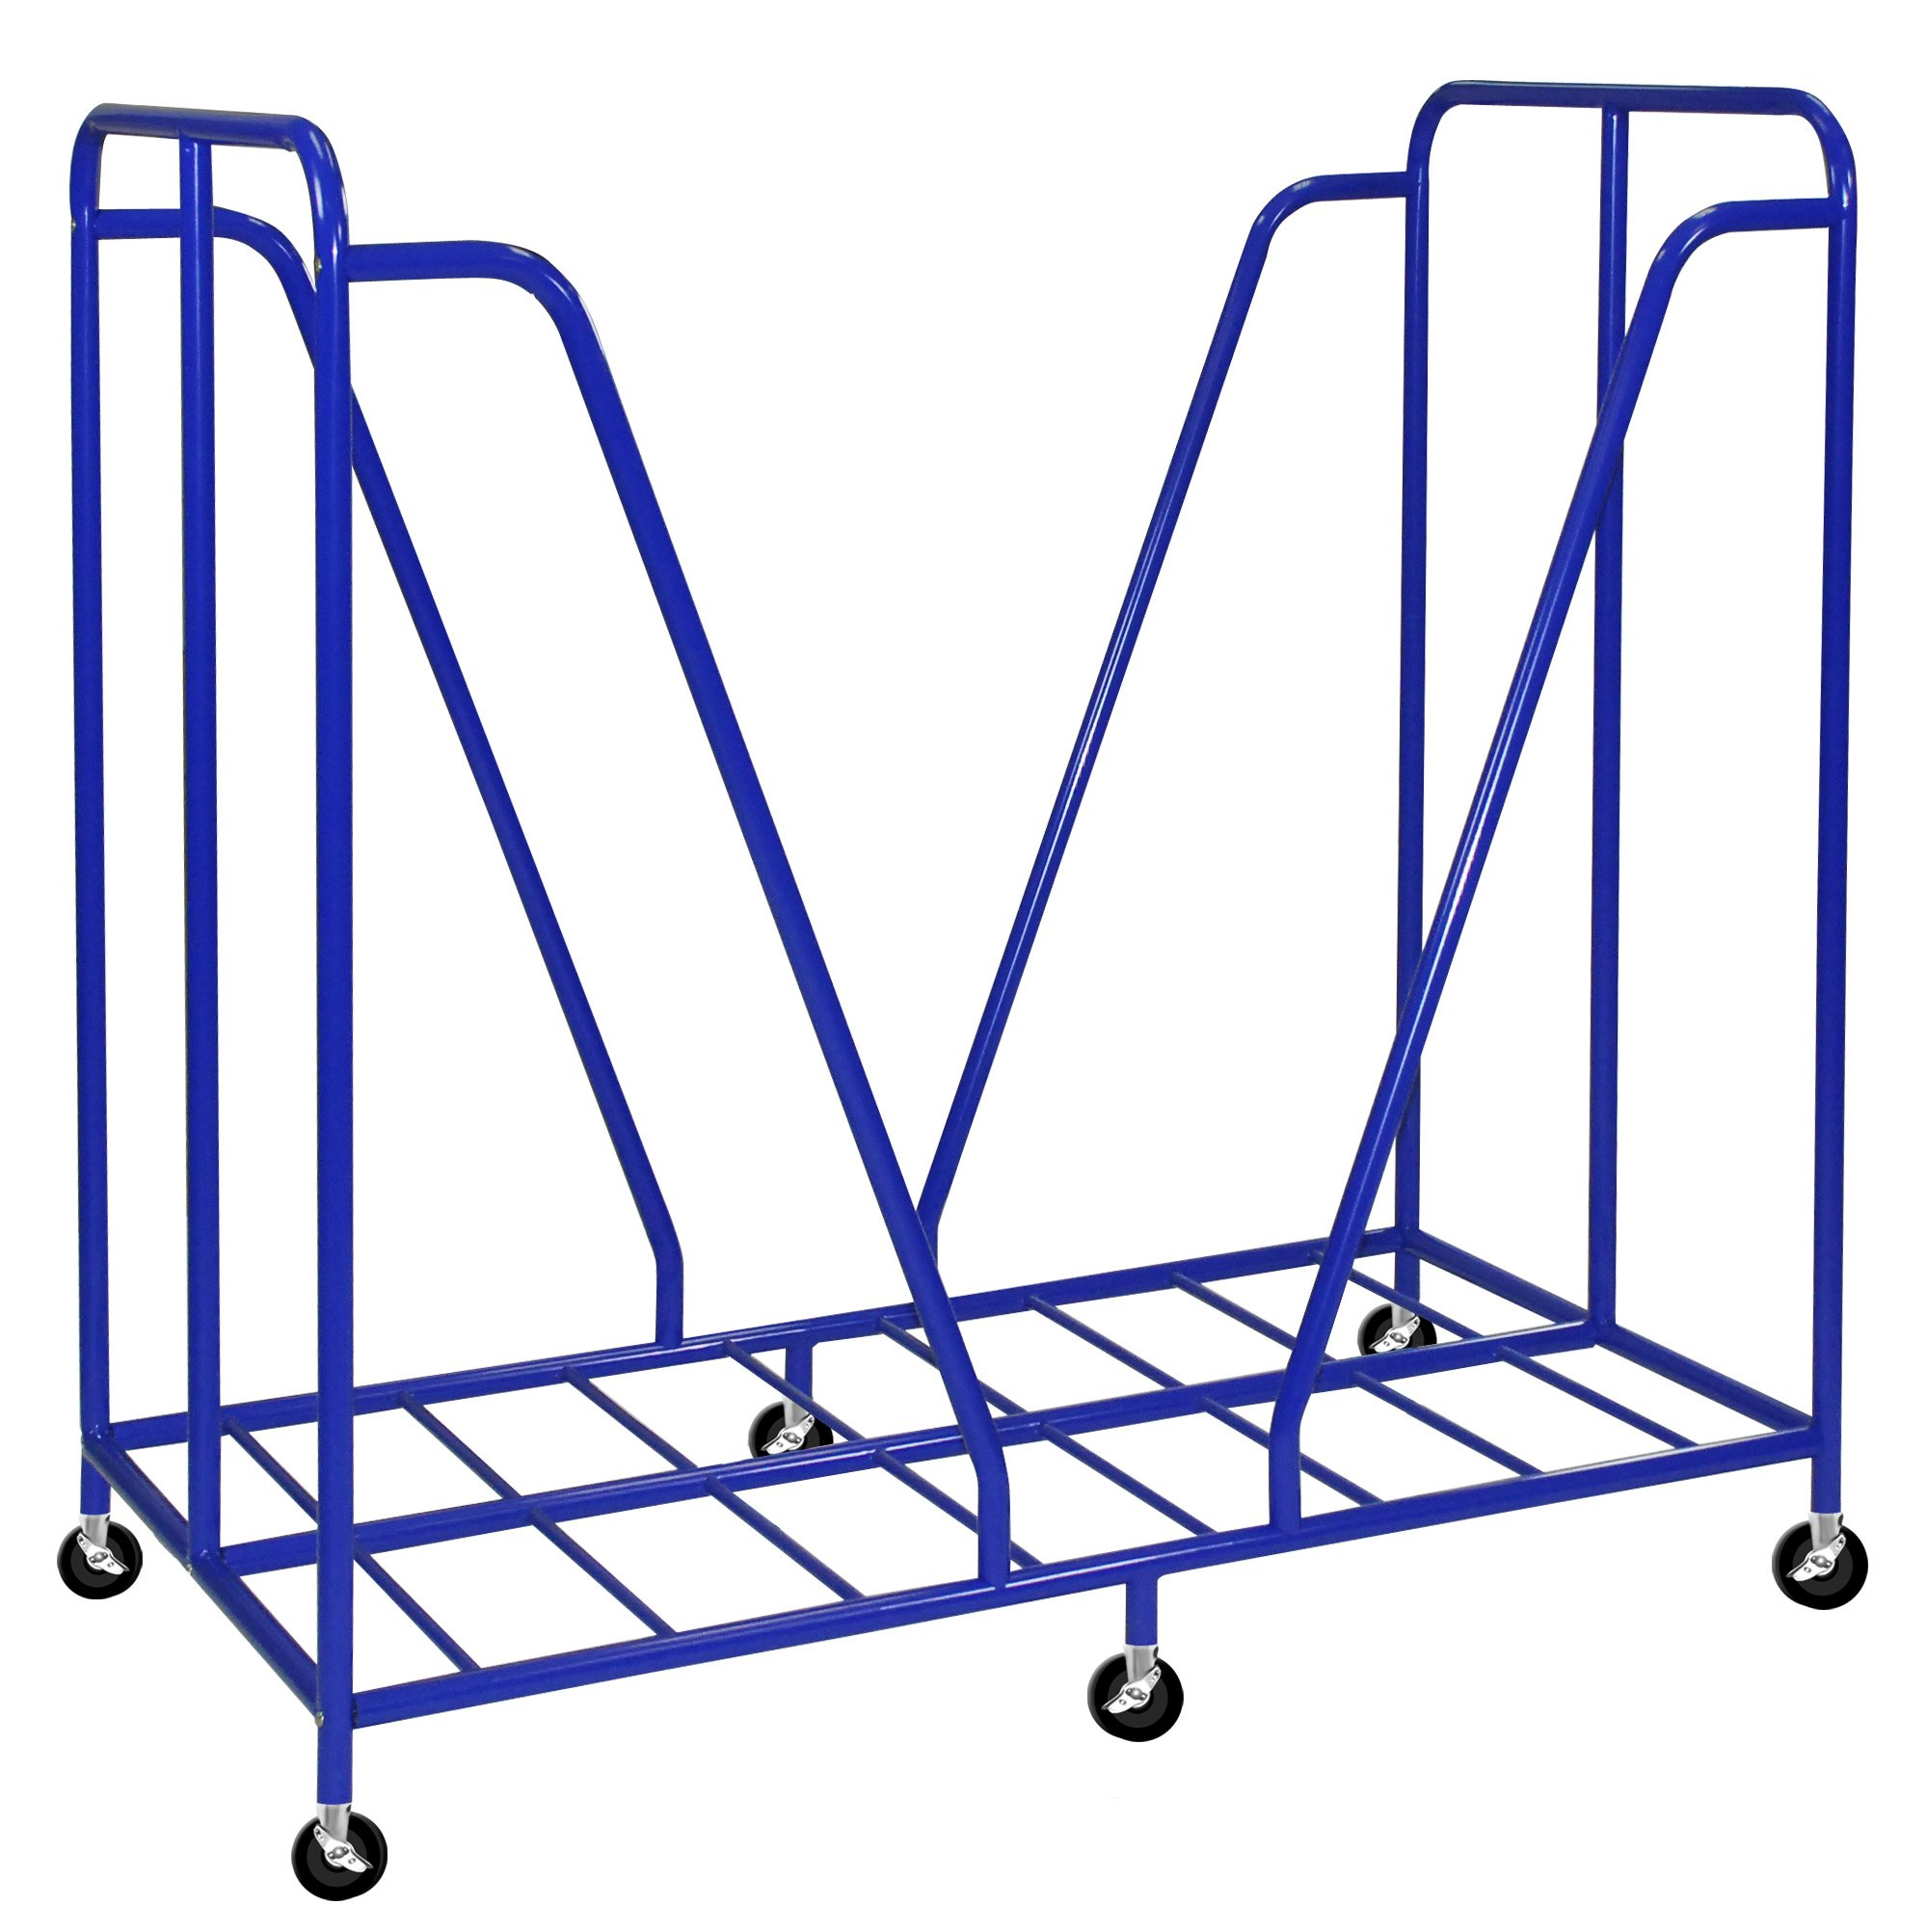 ECR4Kids Mobile Rest Mat Storage Trolley with Casters, Blue